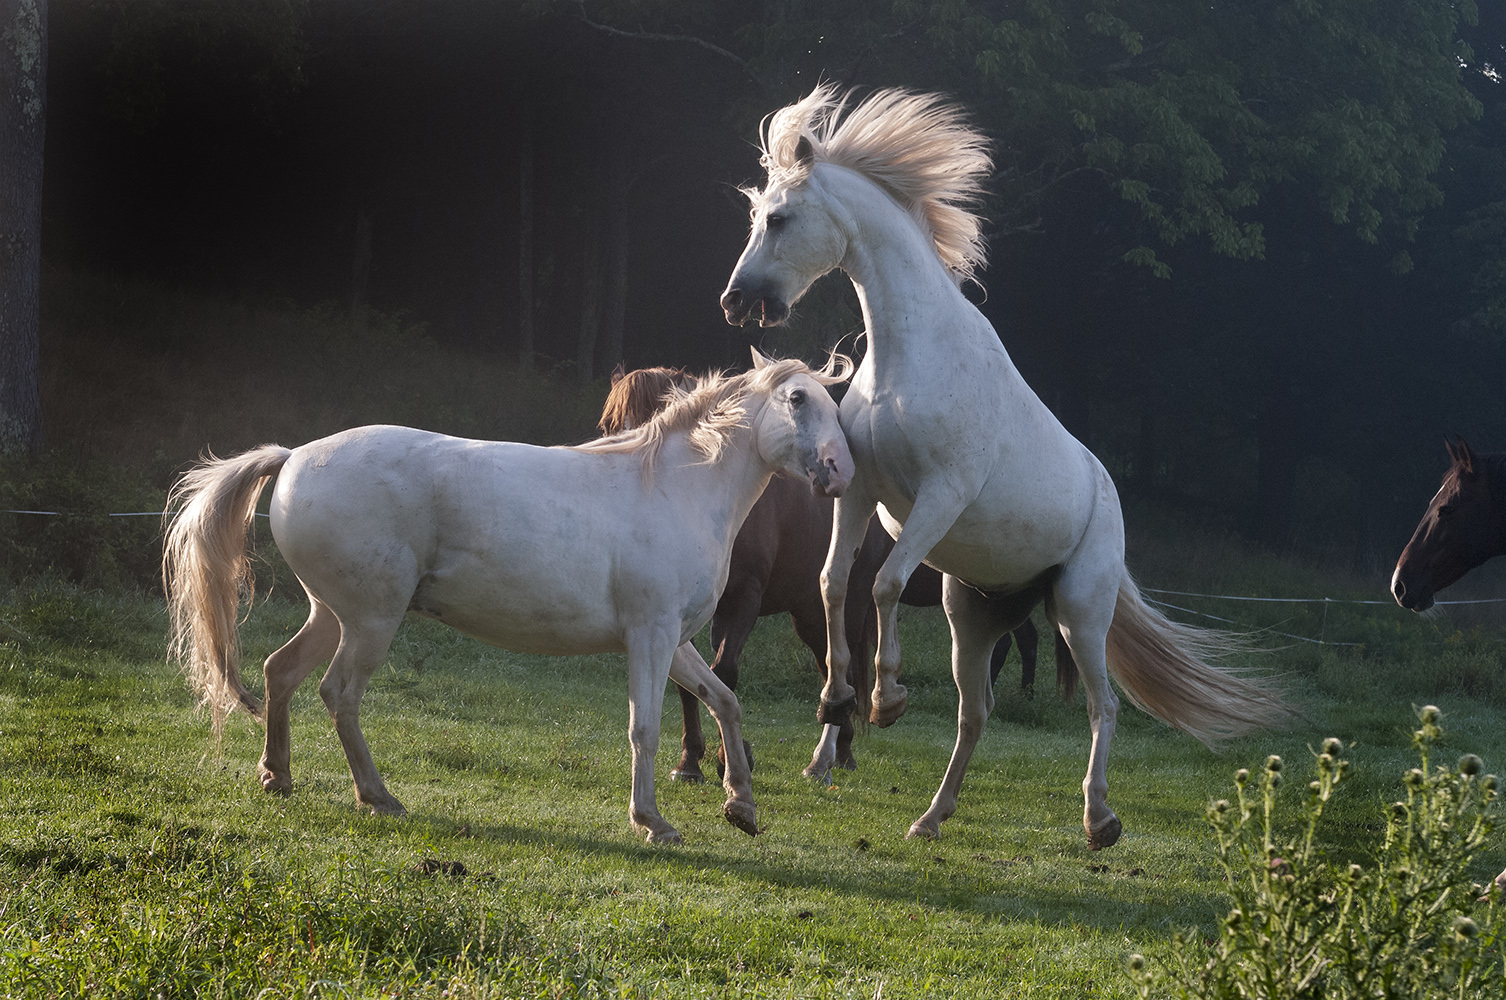 Horse Play in the Catskils